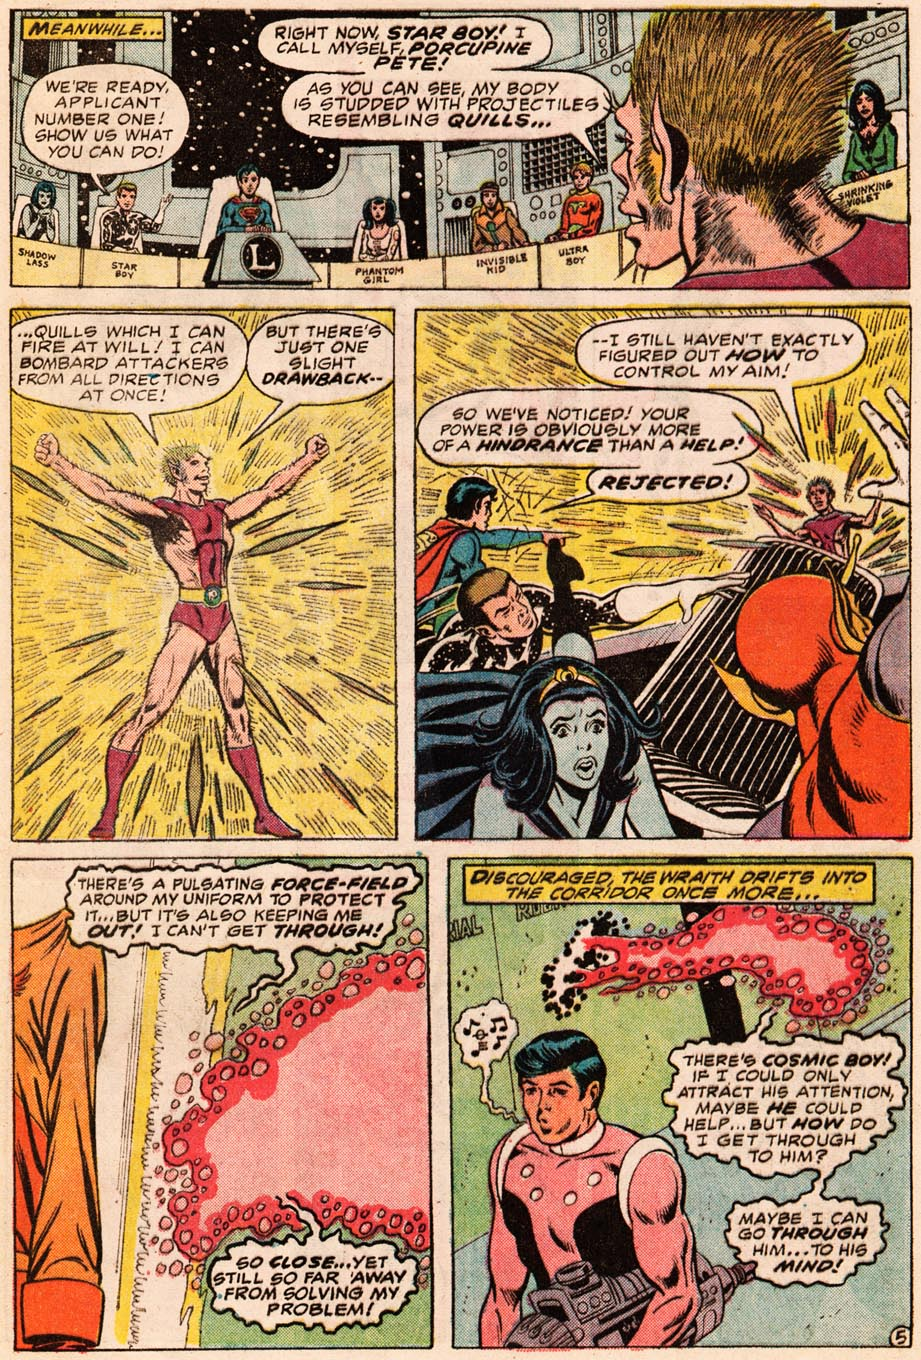 The Bronze Age Of Blogs Legion Super Heroes Betrayer Hi Hansithe Codes Do Point To An Electrical Problem With Transfer But Then I Guess What Bouncing Boy Duo Damsel Get Up At Night Already Covers That One And As We Know You Cant Have Same Superpower Twice In